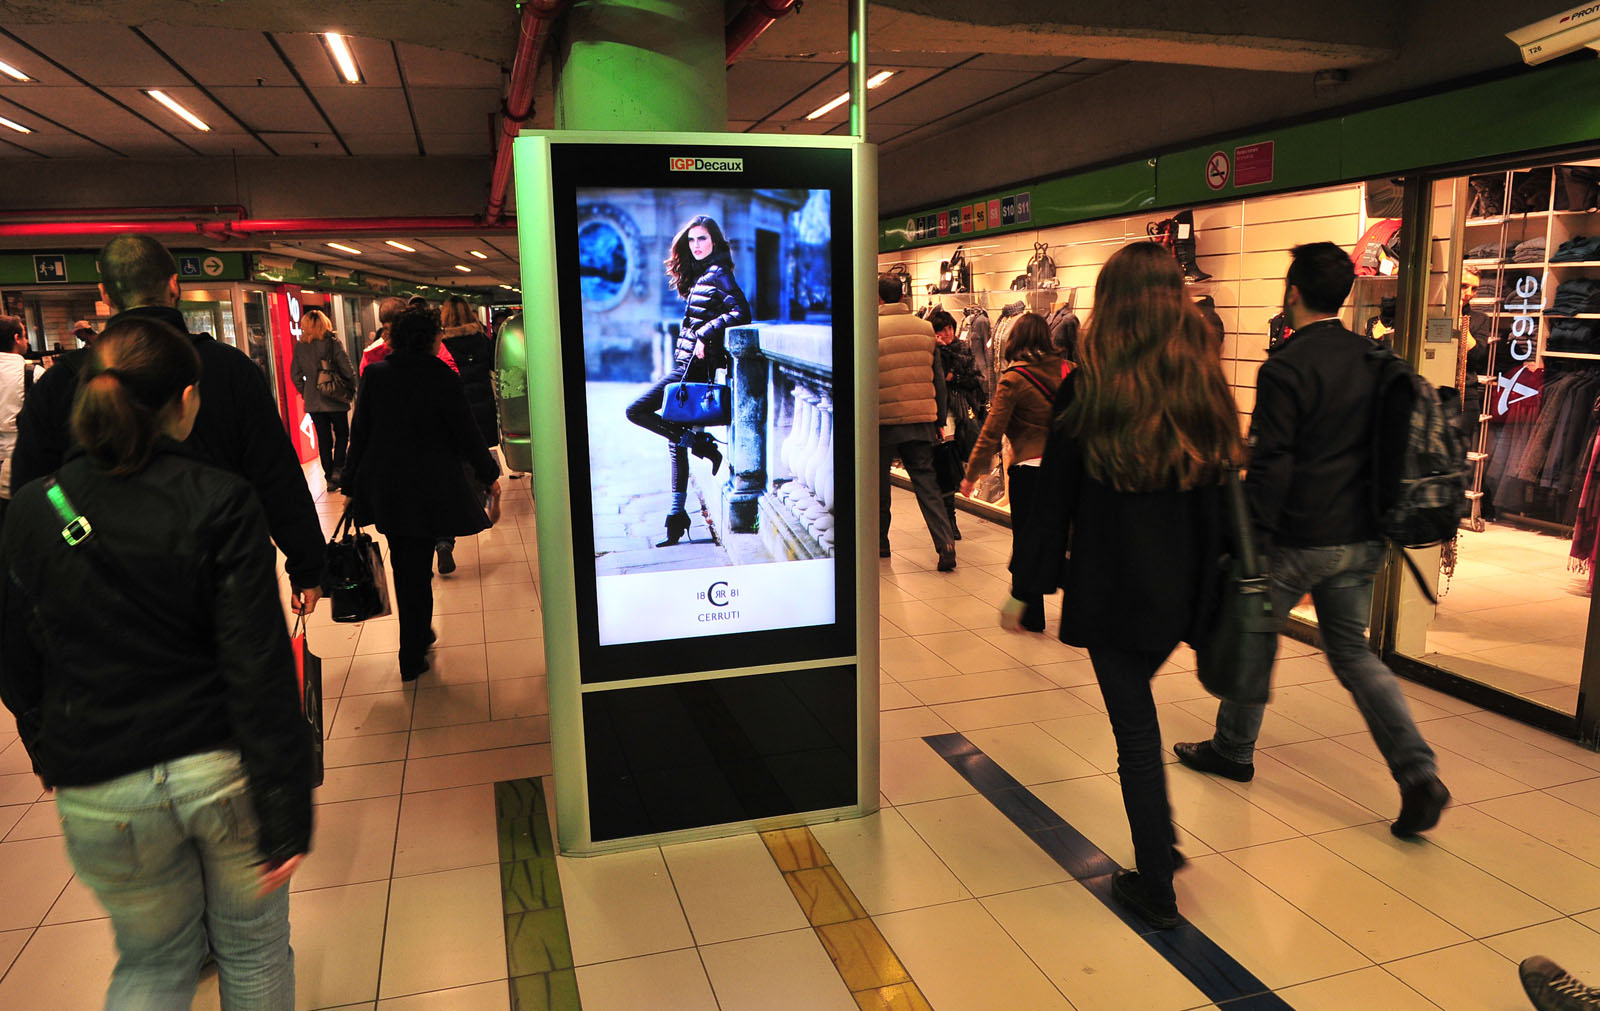 Italy's video advertising market to grow by 30% in 2016